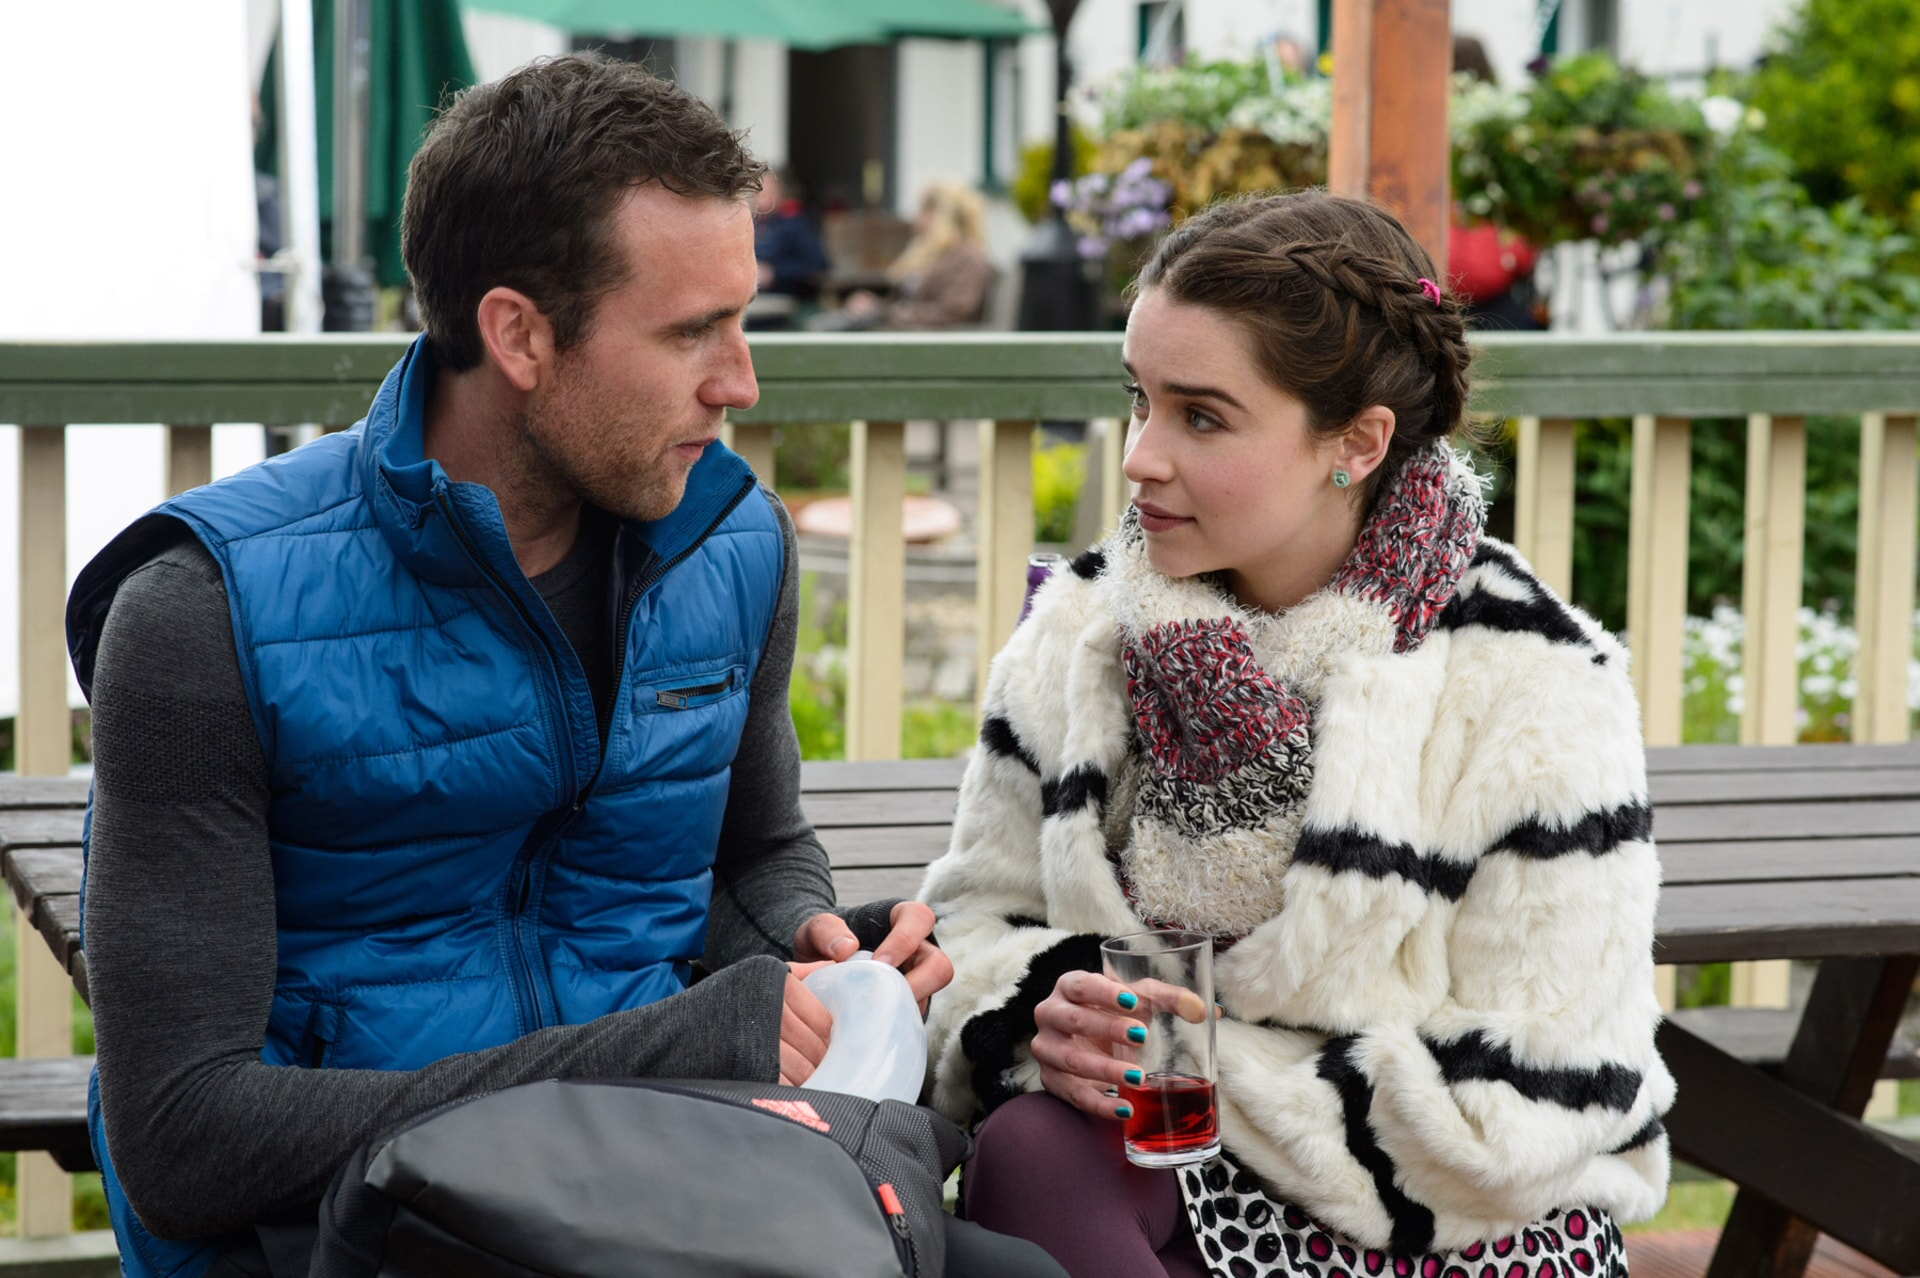 MATTHEW LEWIS as Patrick and EMILIA CLARKE as Lou Clark sitting and talking outdoors.